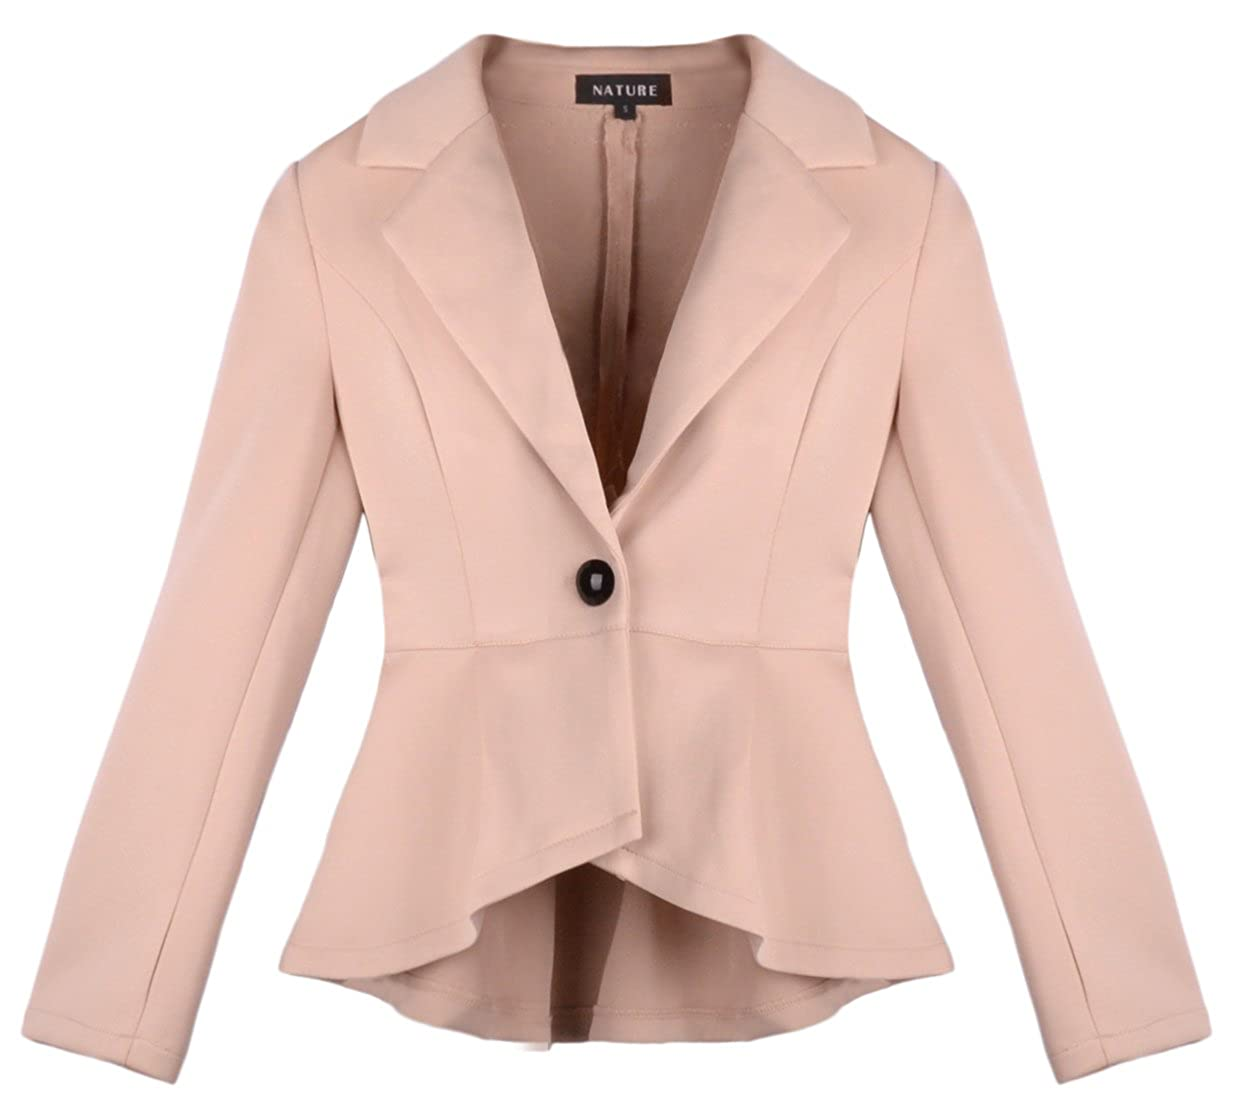 Women's One Button Long Sleeve TOP Slim Jacket Small Suit